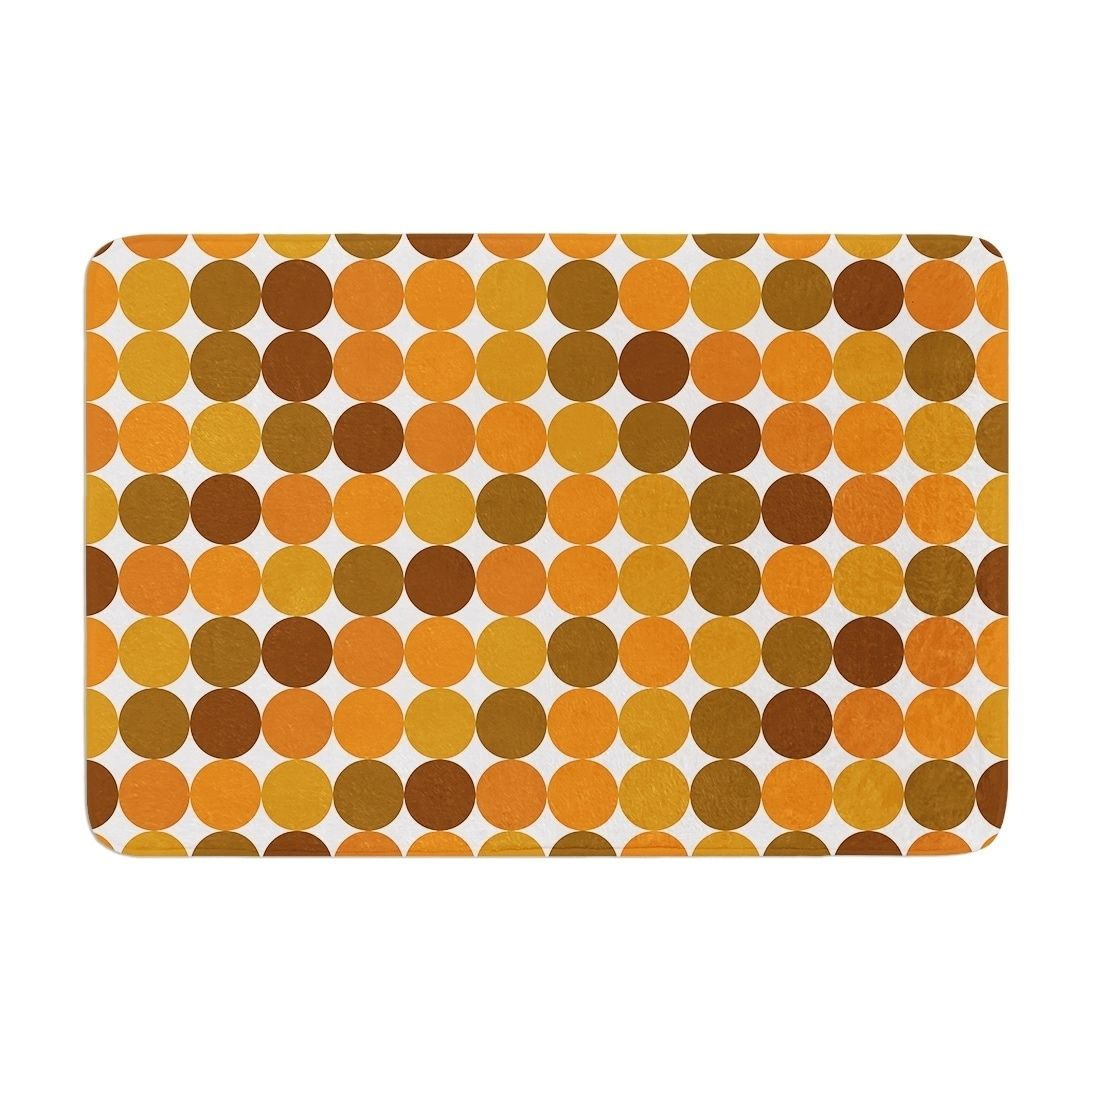 Kess Original Noblefur Orange Harvest Memory Foam Bath Mat Kess